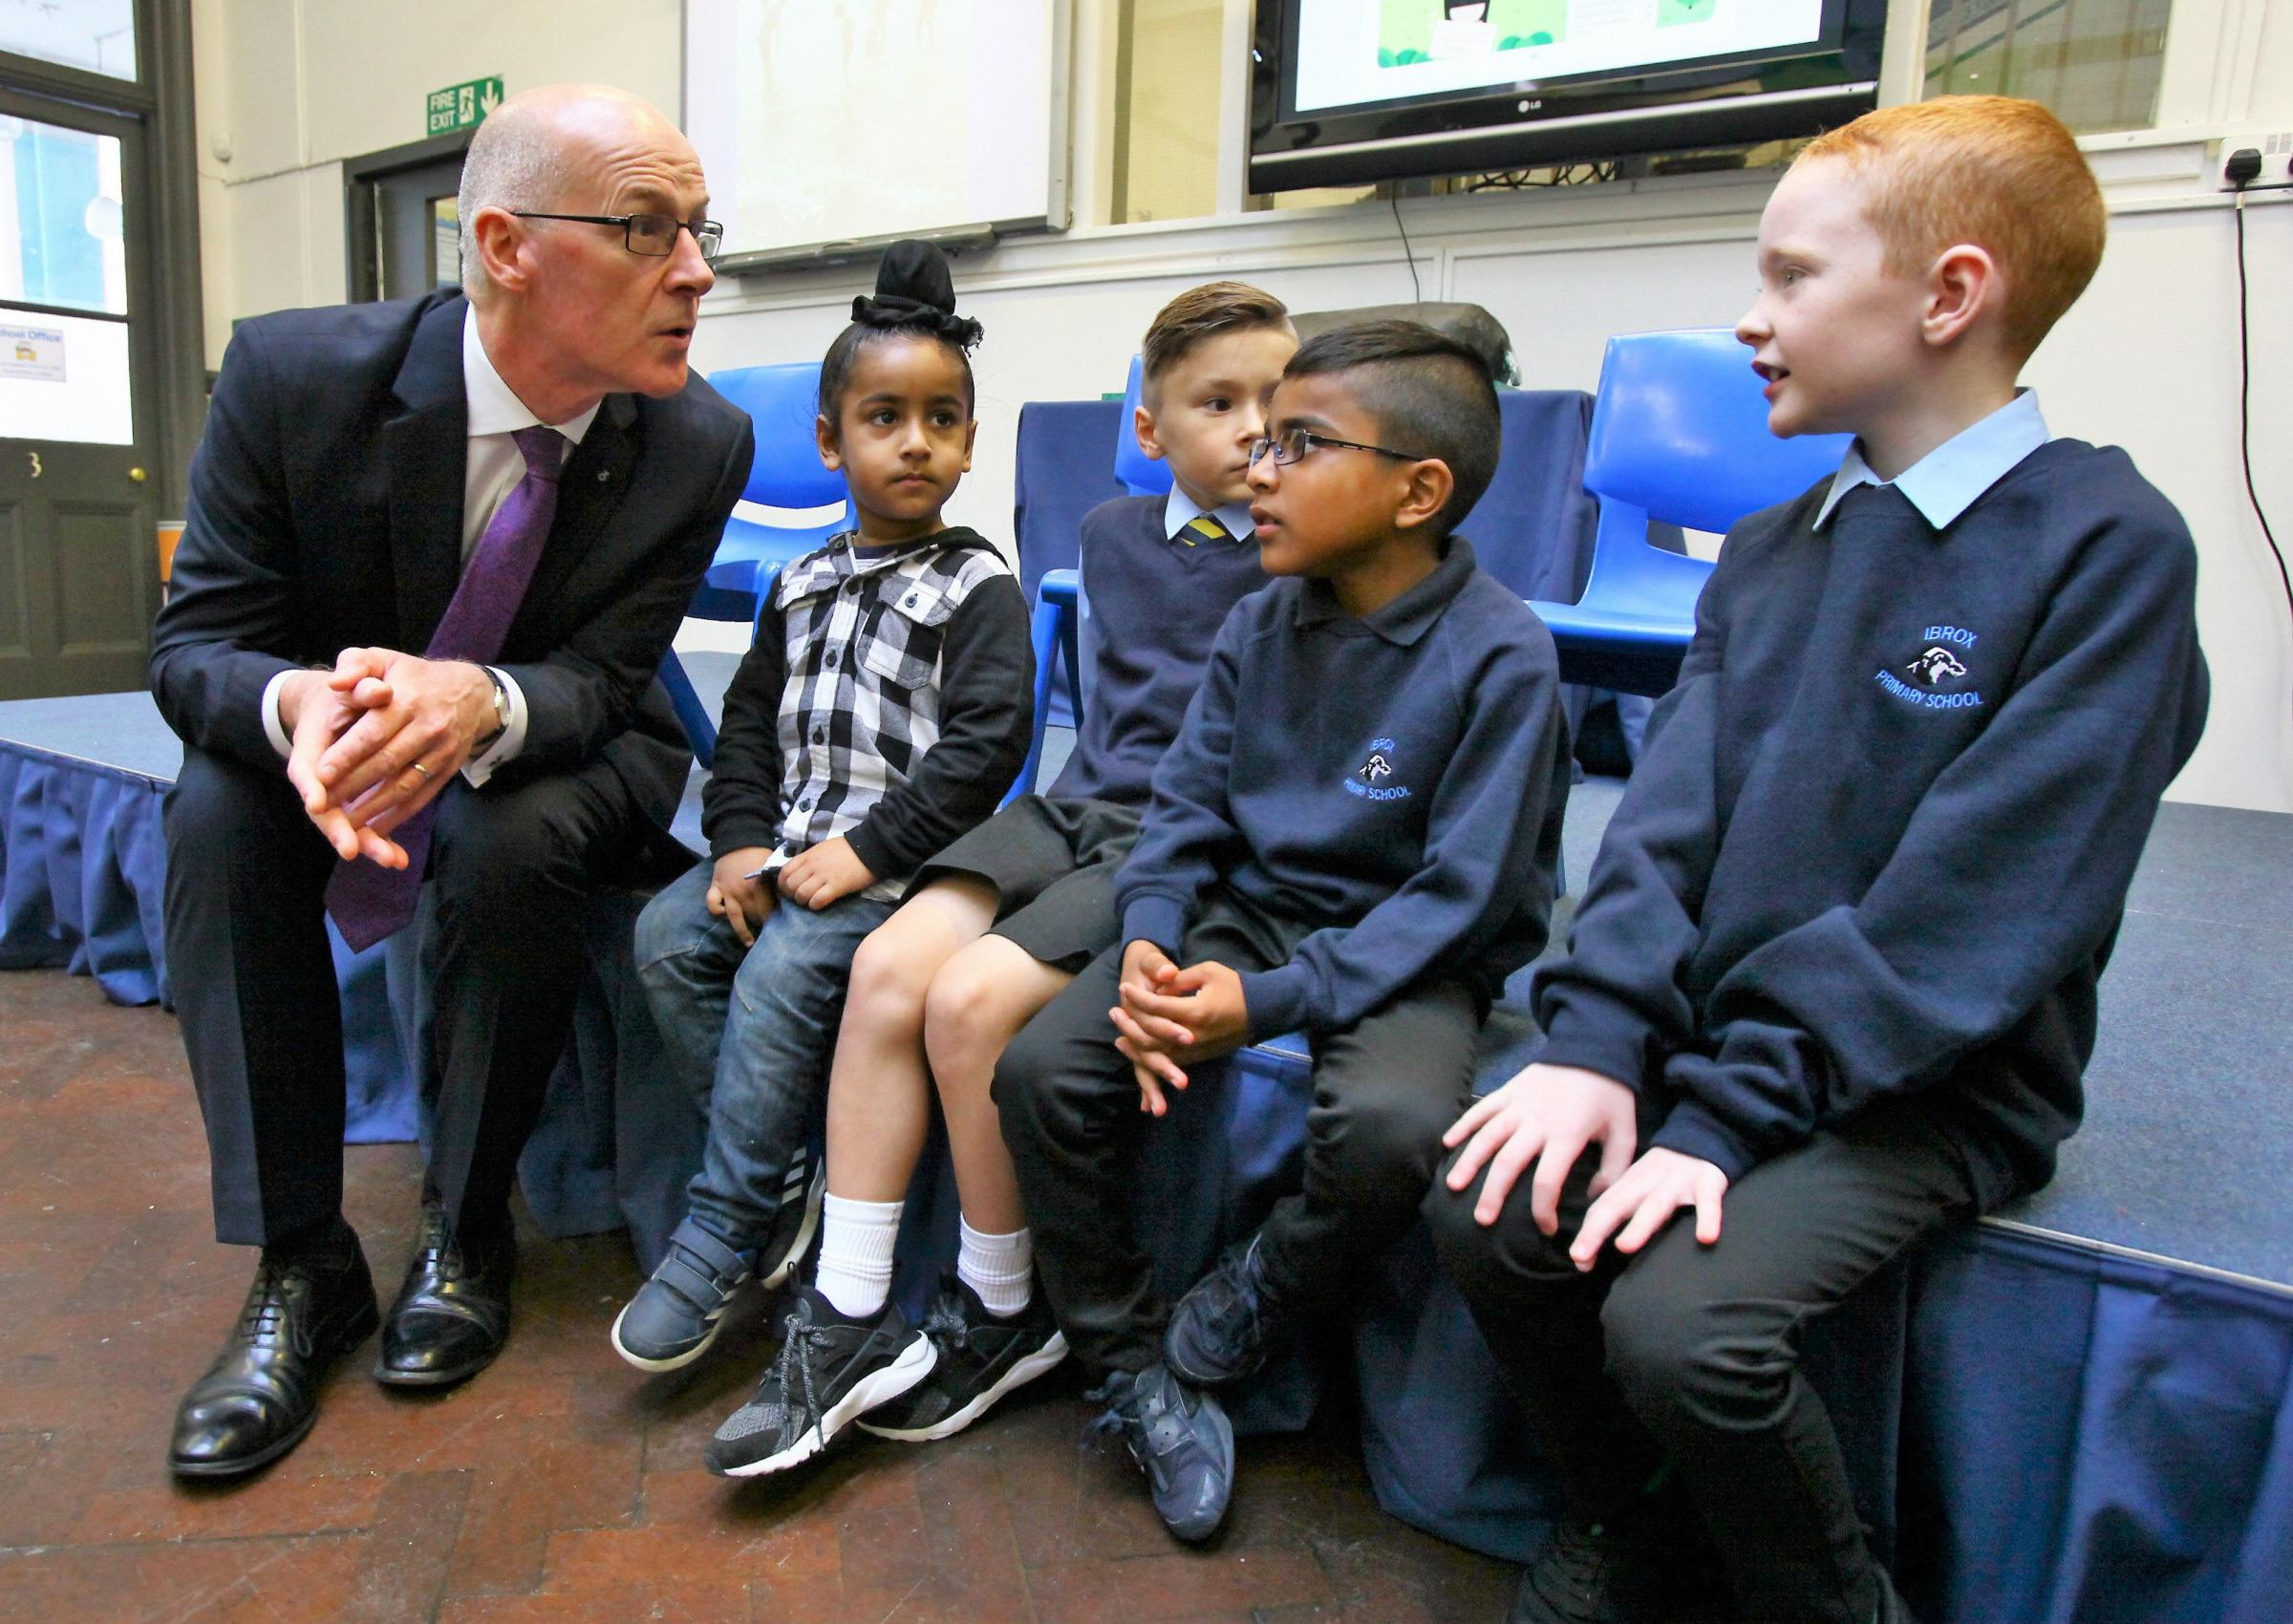 Education Secretary John Swinney has been criticised for refusing to scrap P1 assessments